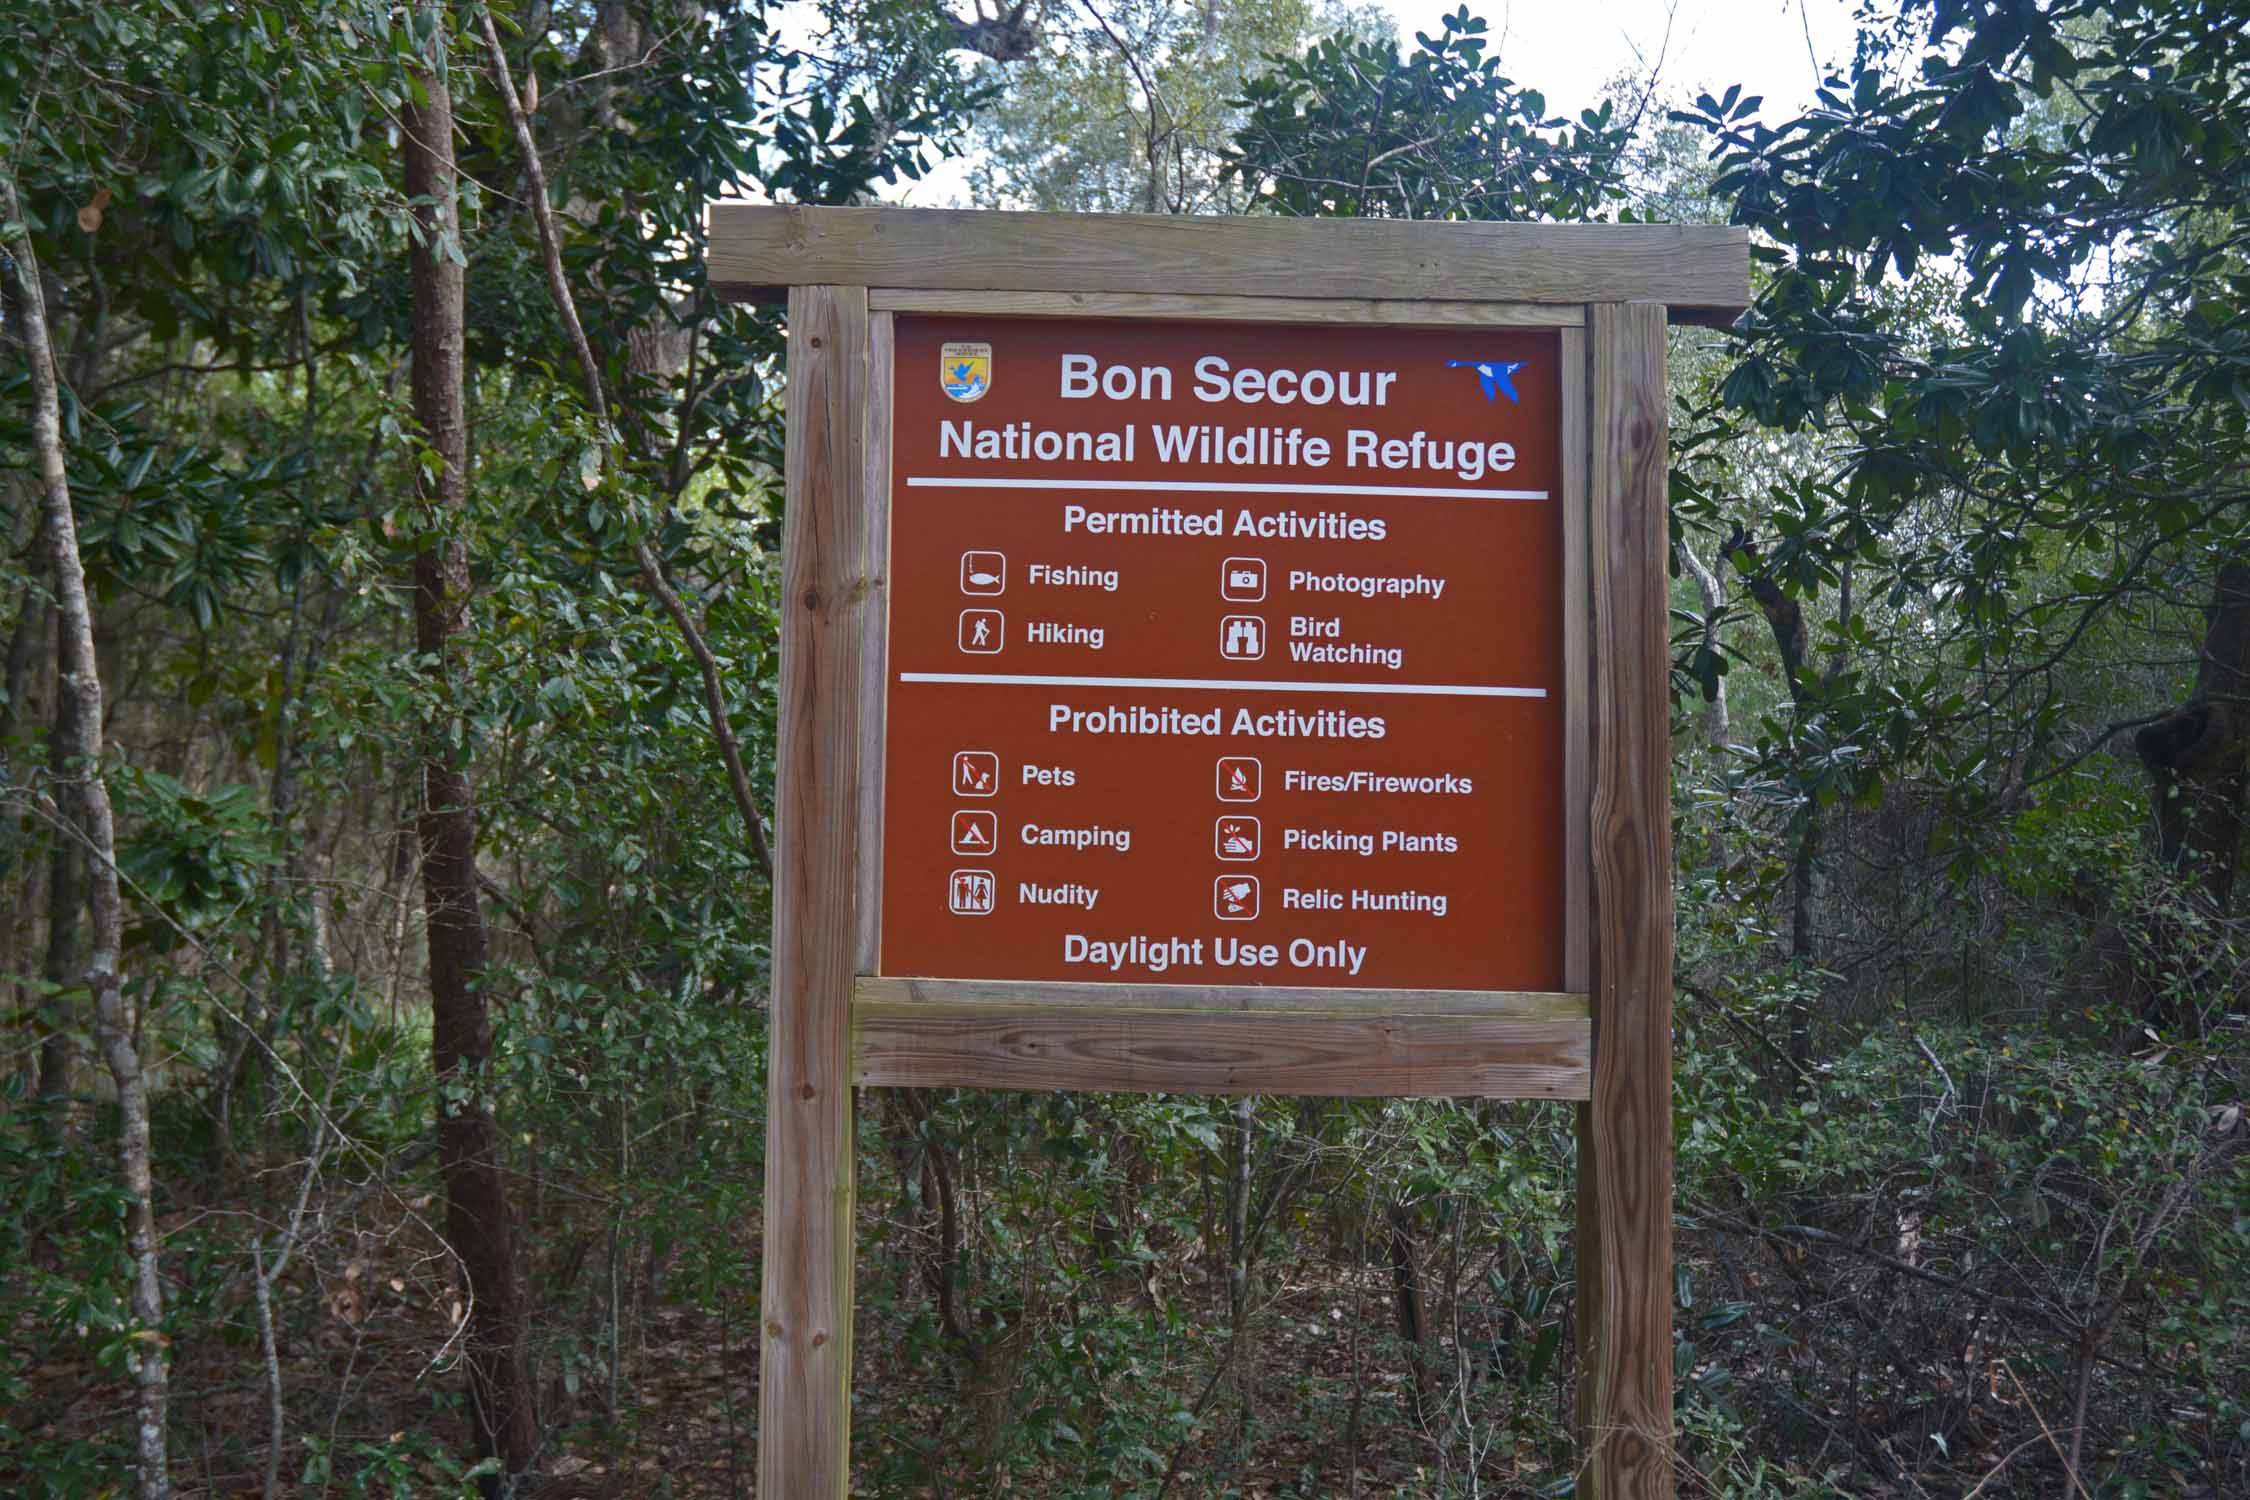 Bon Secour is where you can run into almost anything on the trail...Good hiking and a great place to explore...